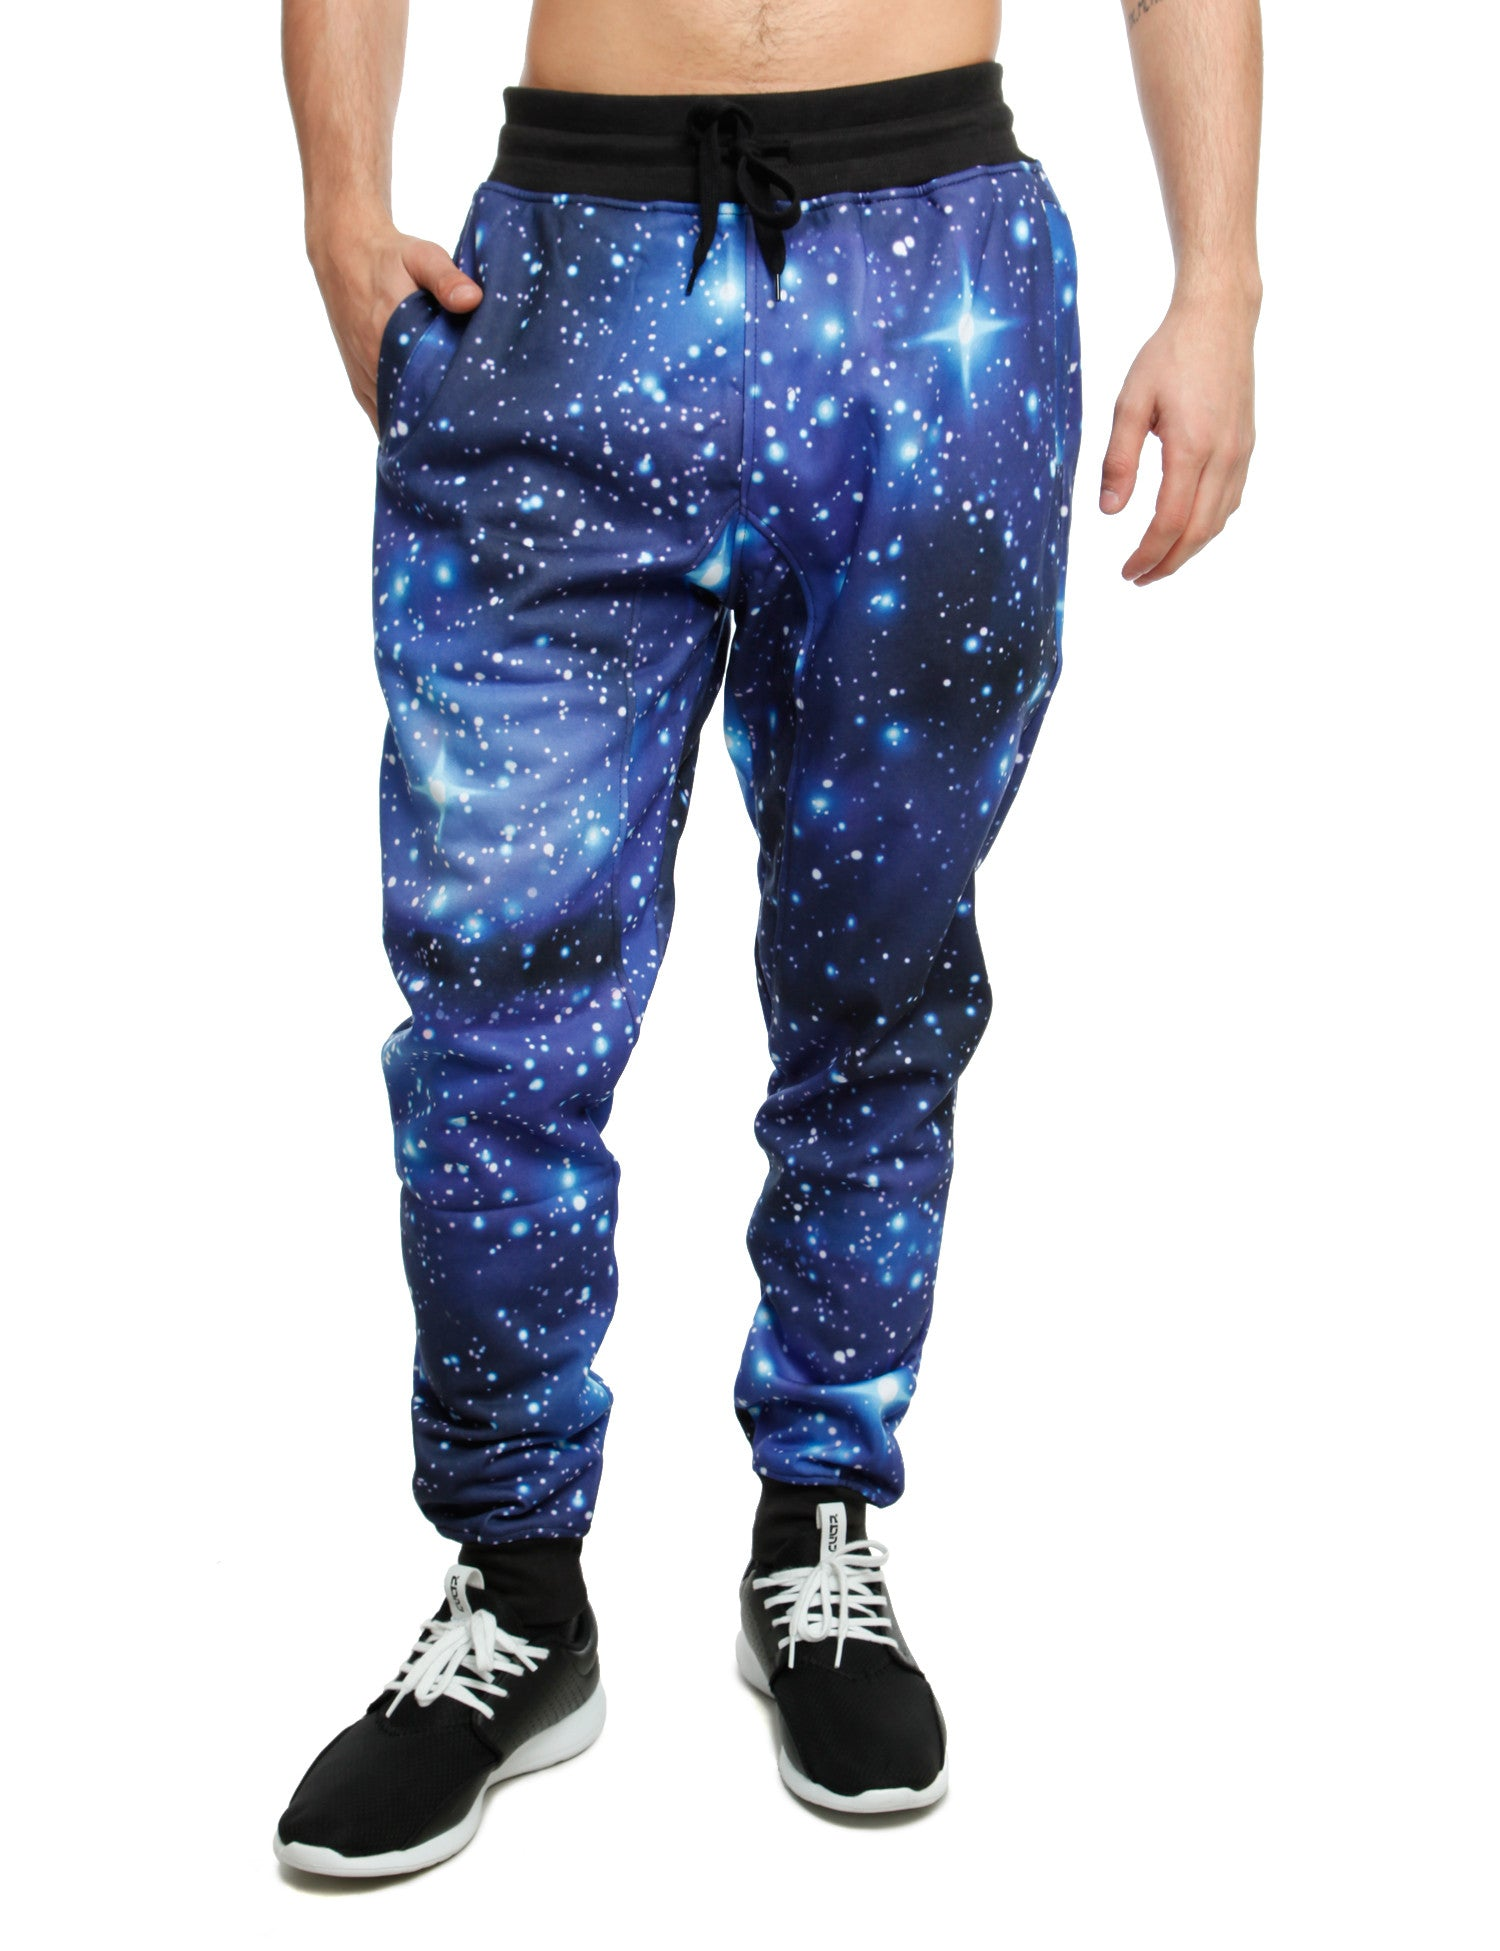 Imperious Galaxy All Over Sweatpant FP563 Black